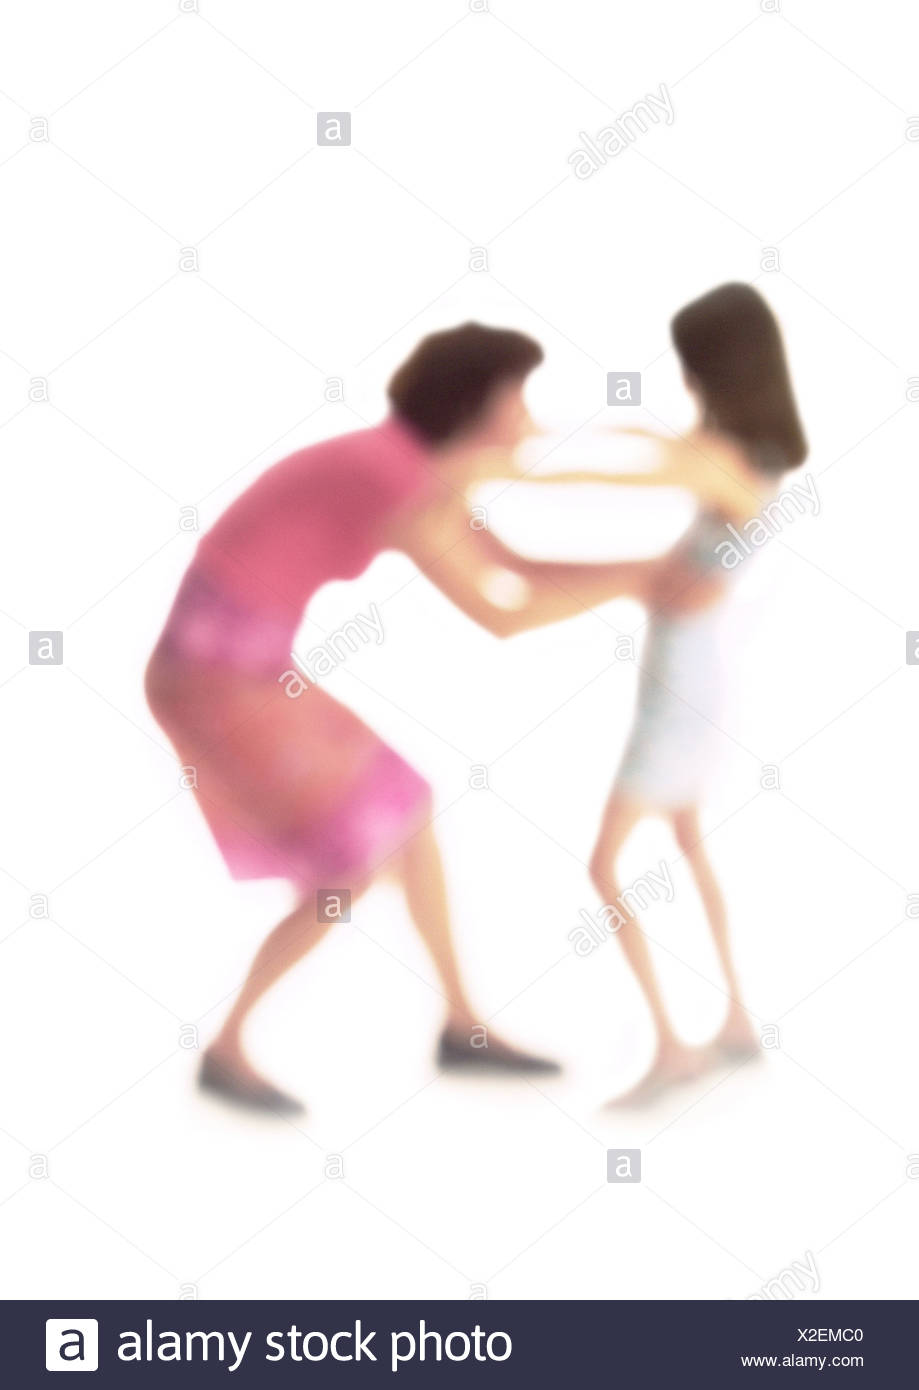 Silhouette of mother and daughter about to hug, on white background, defocused - Stock Image